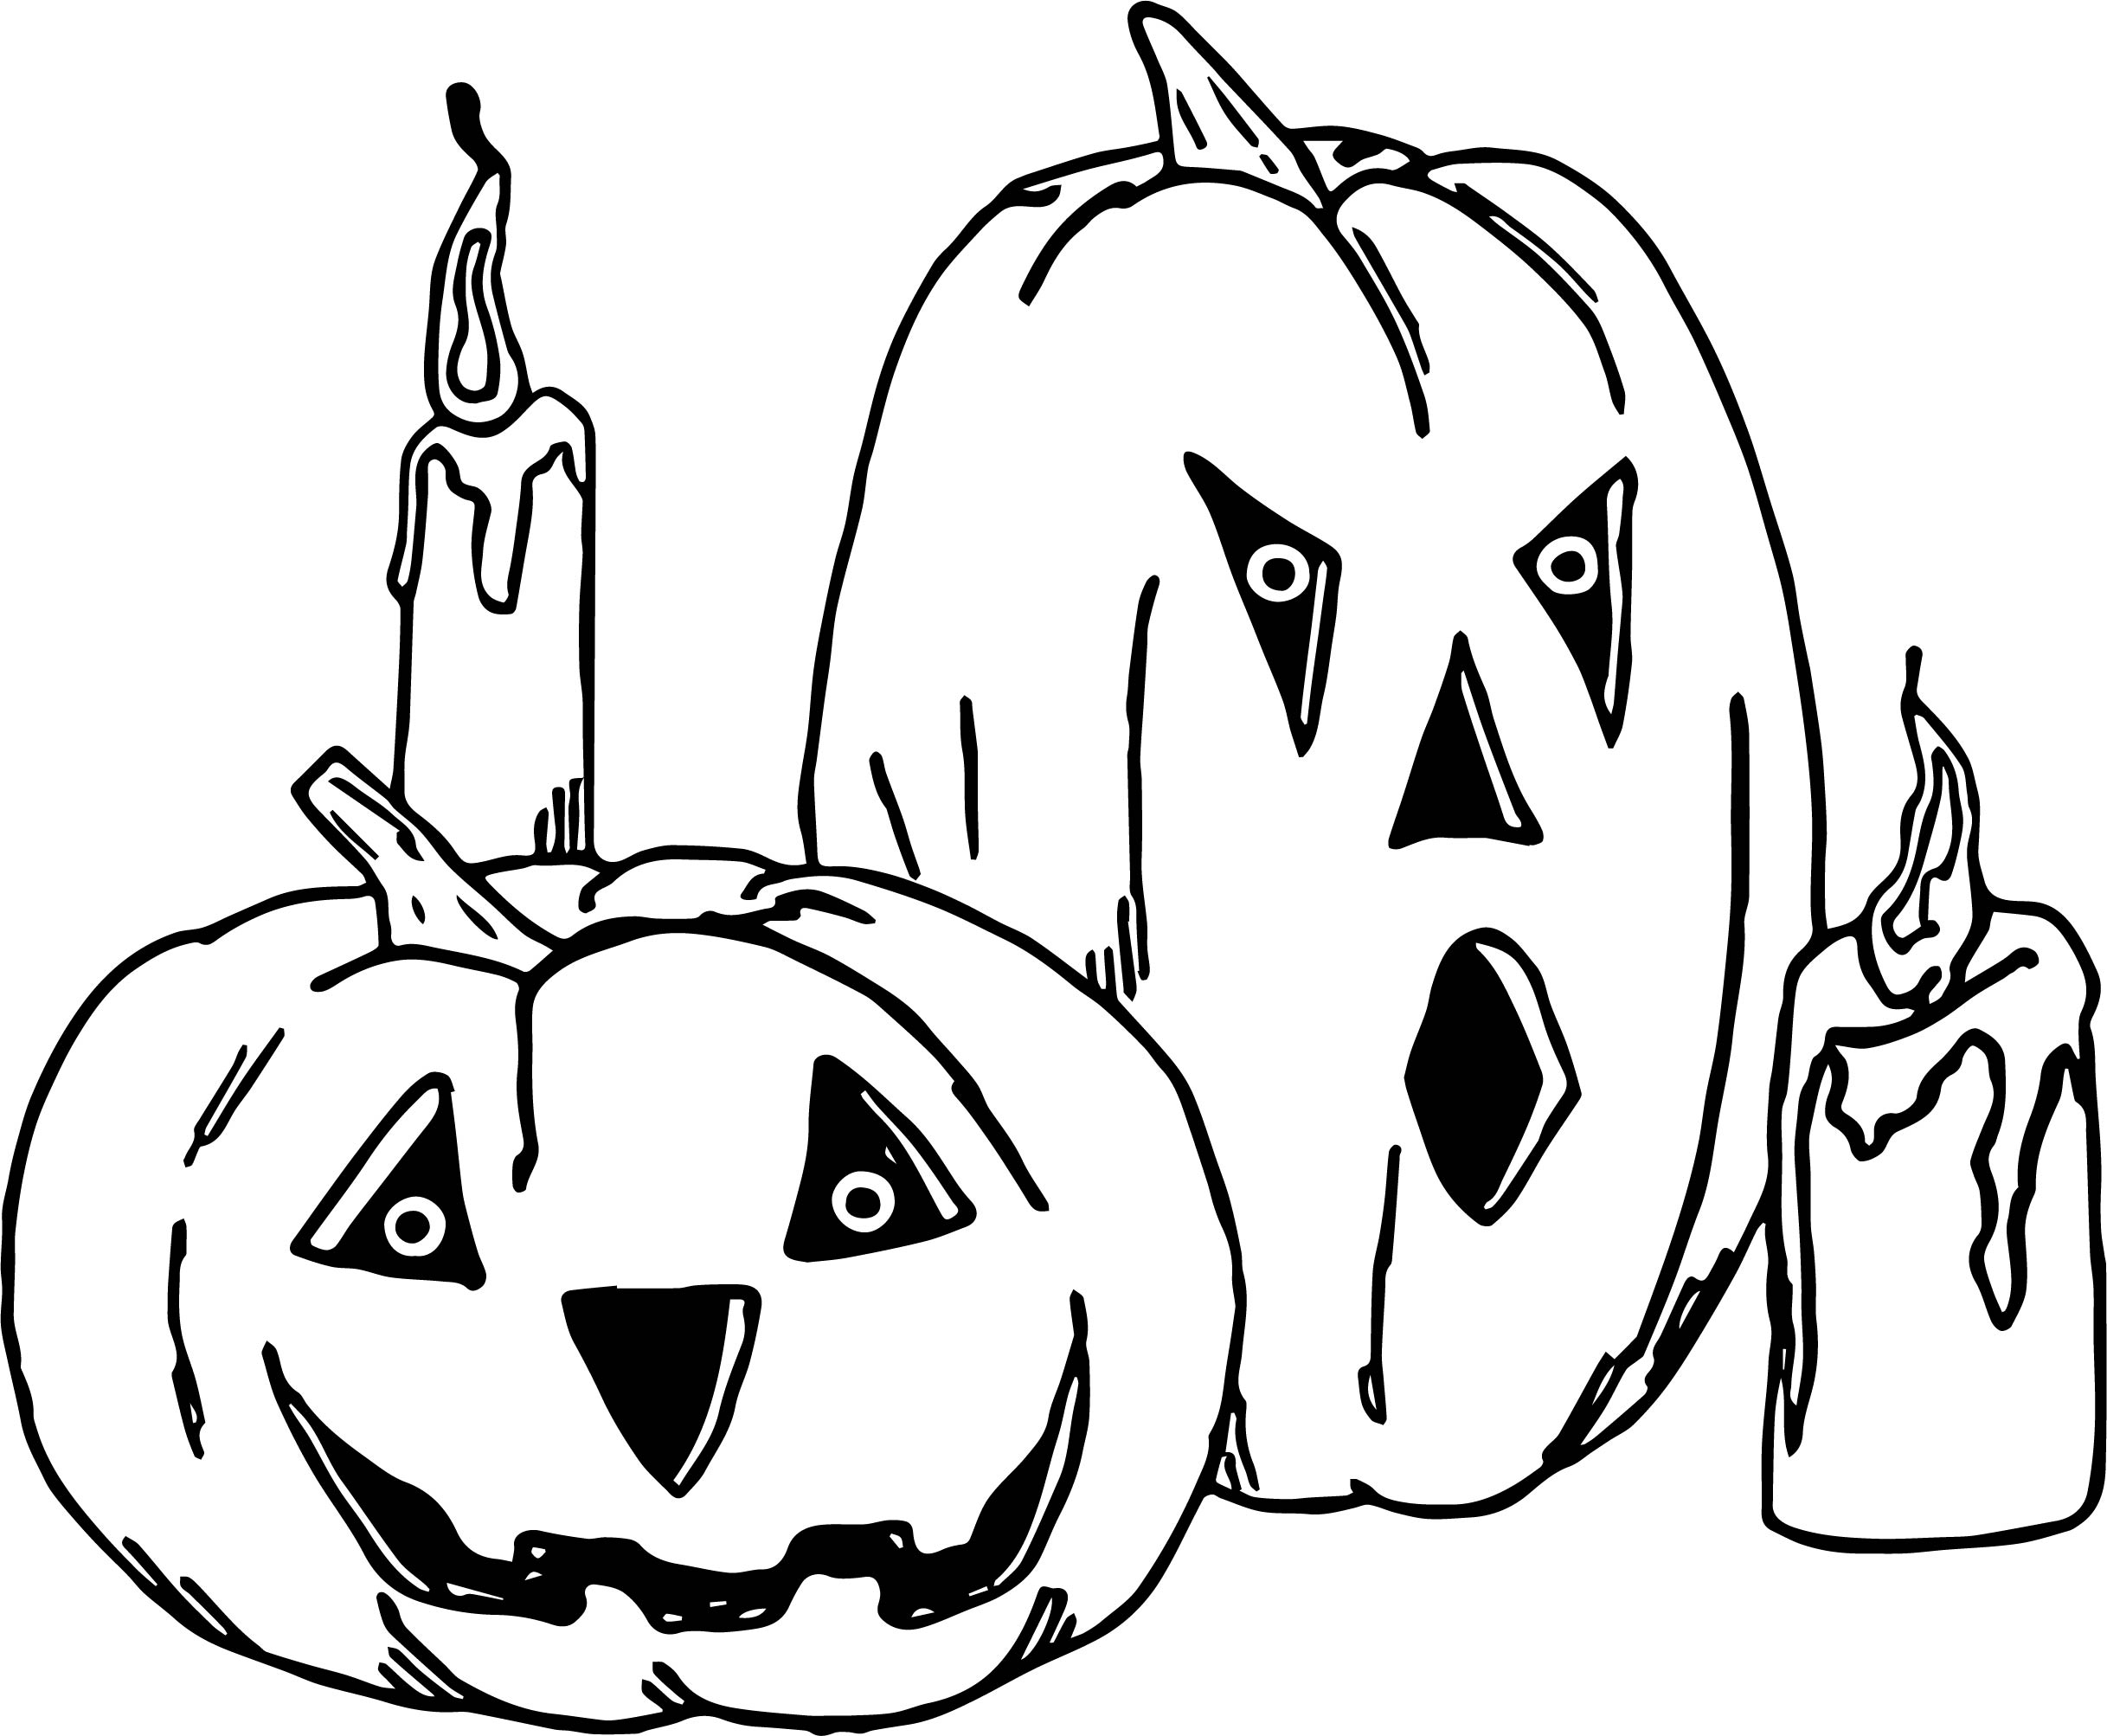 Jack O Lanterns Candles Halloween Coloring Page